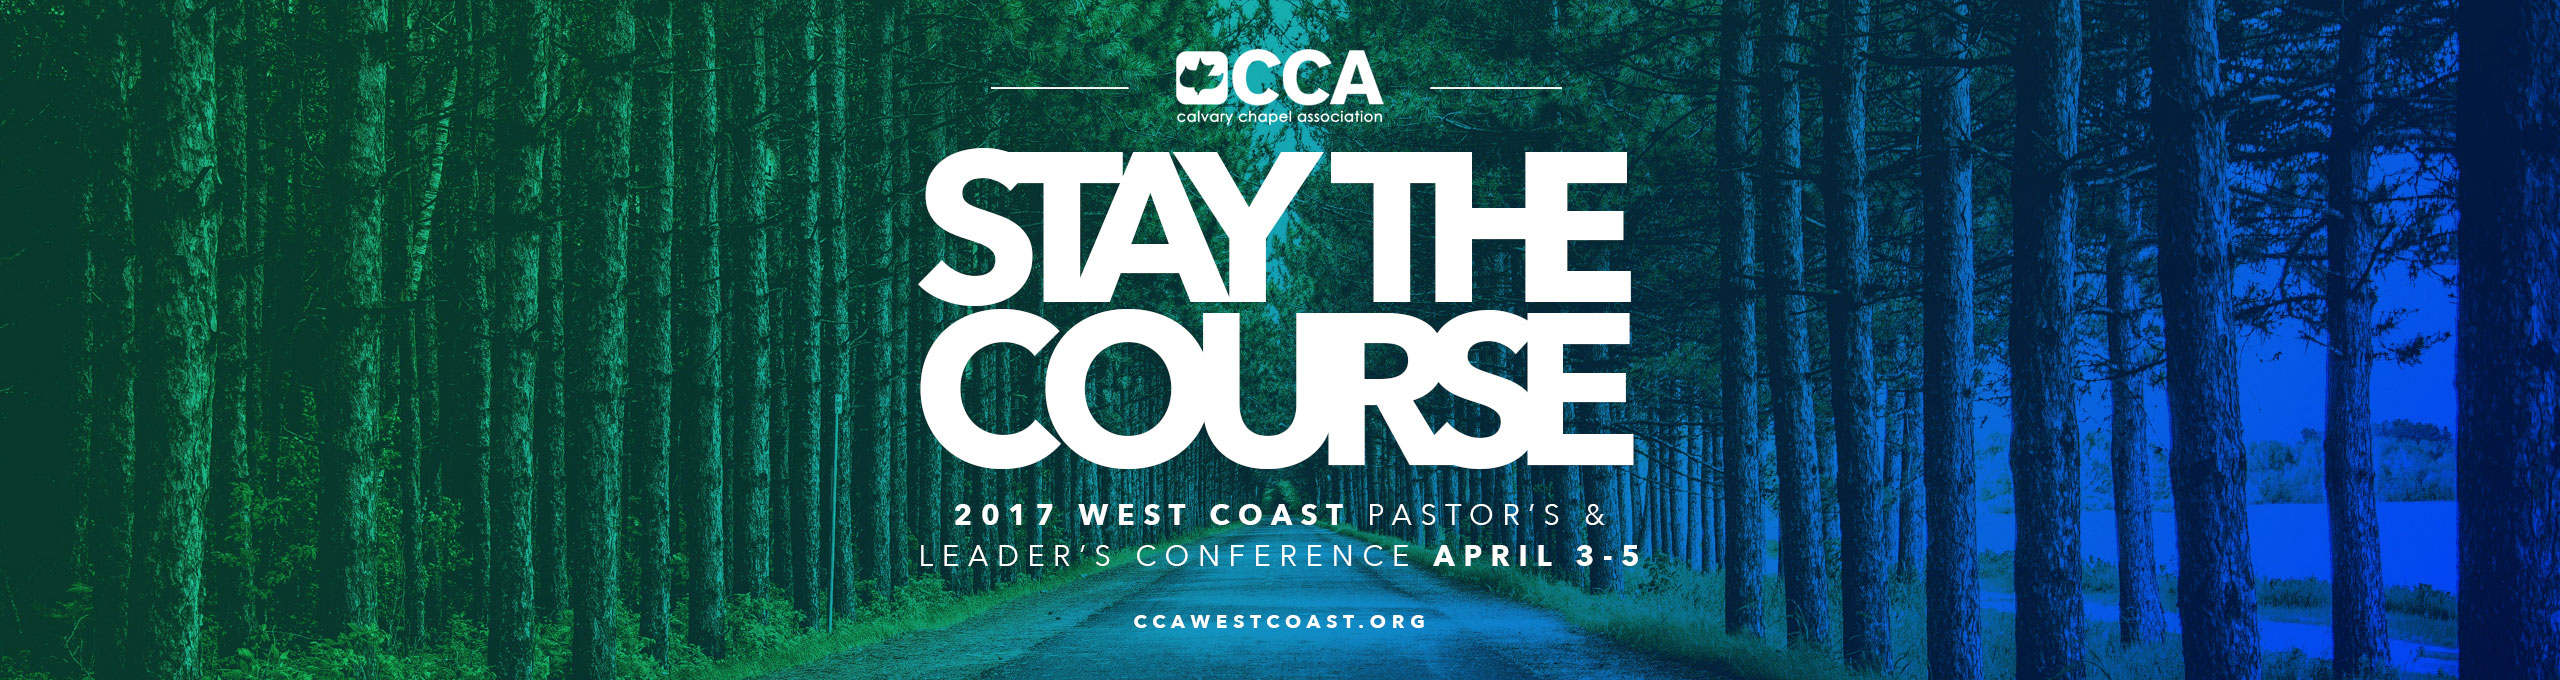 CCA West Coast Pastors Conference Archives